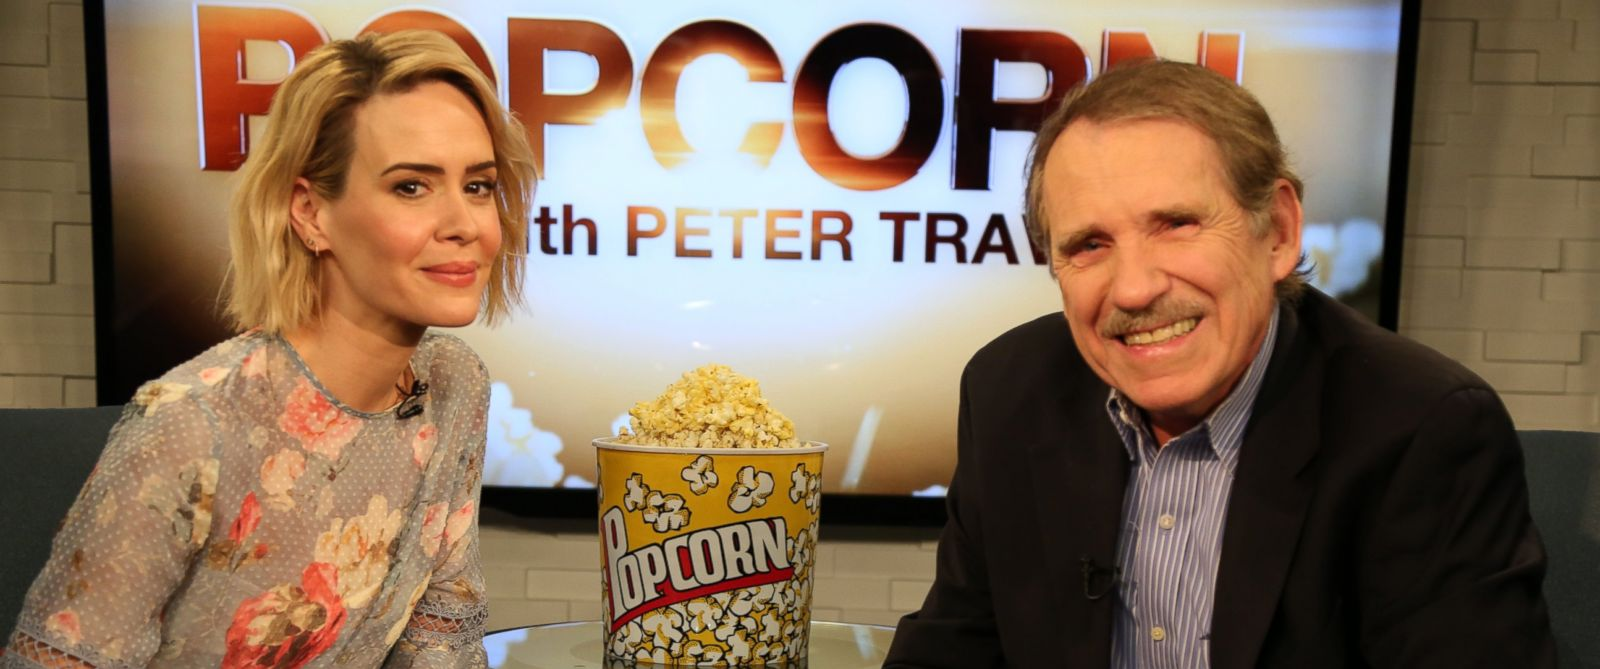 PHOTO: Sarah Paulson speaks with Peter Travers at the ABC Headquarters in New York, February 9, 2016.